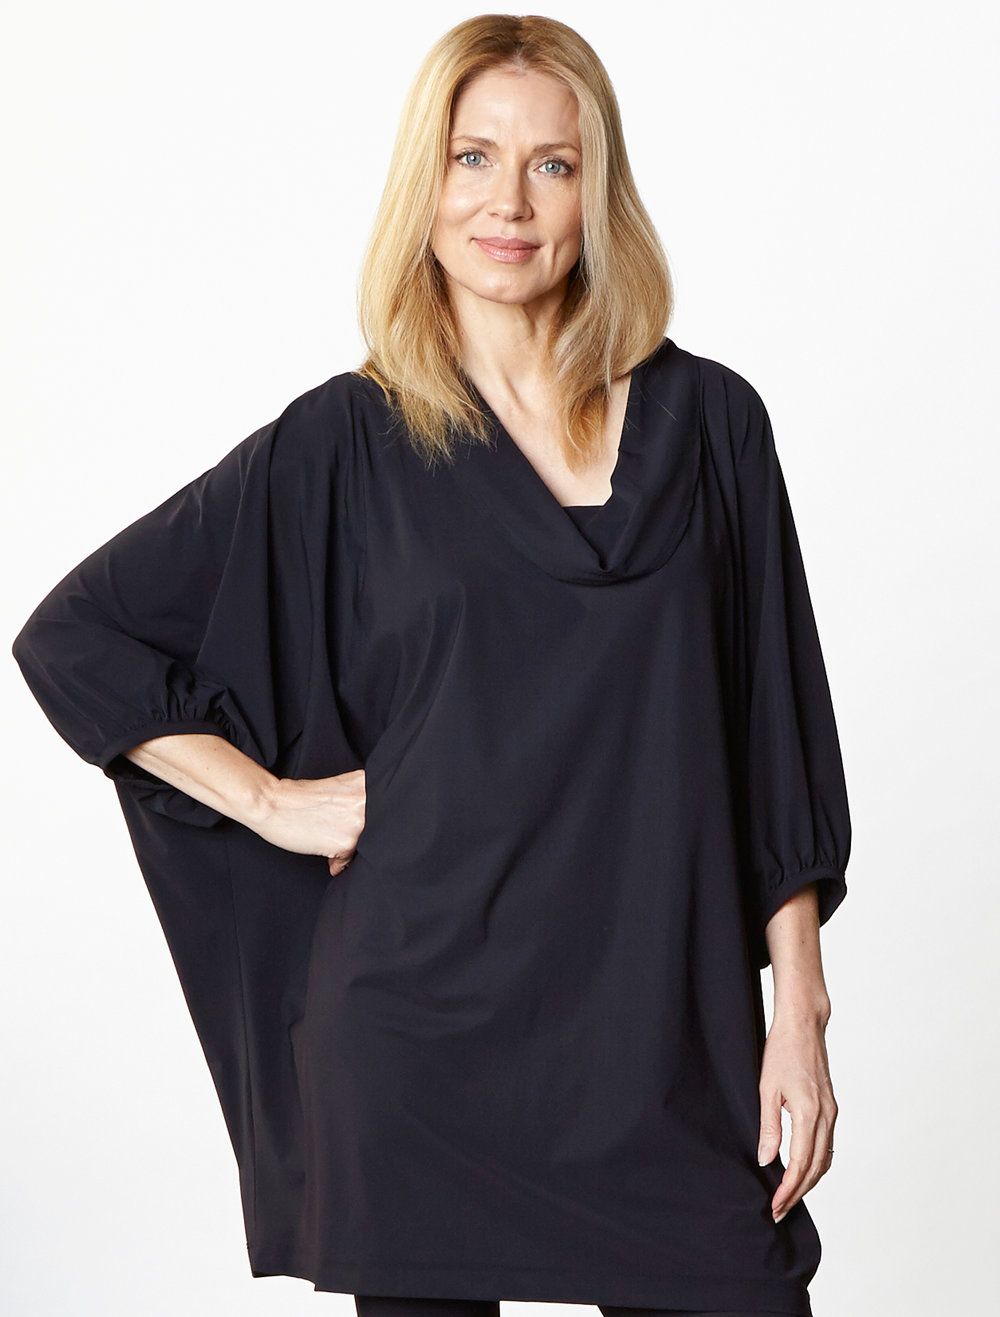 Wilde Tunic,  Legging in Black Italian Microfiber Jersey